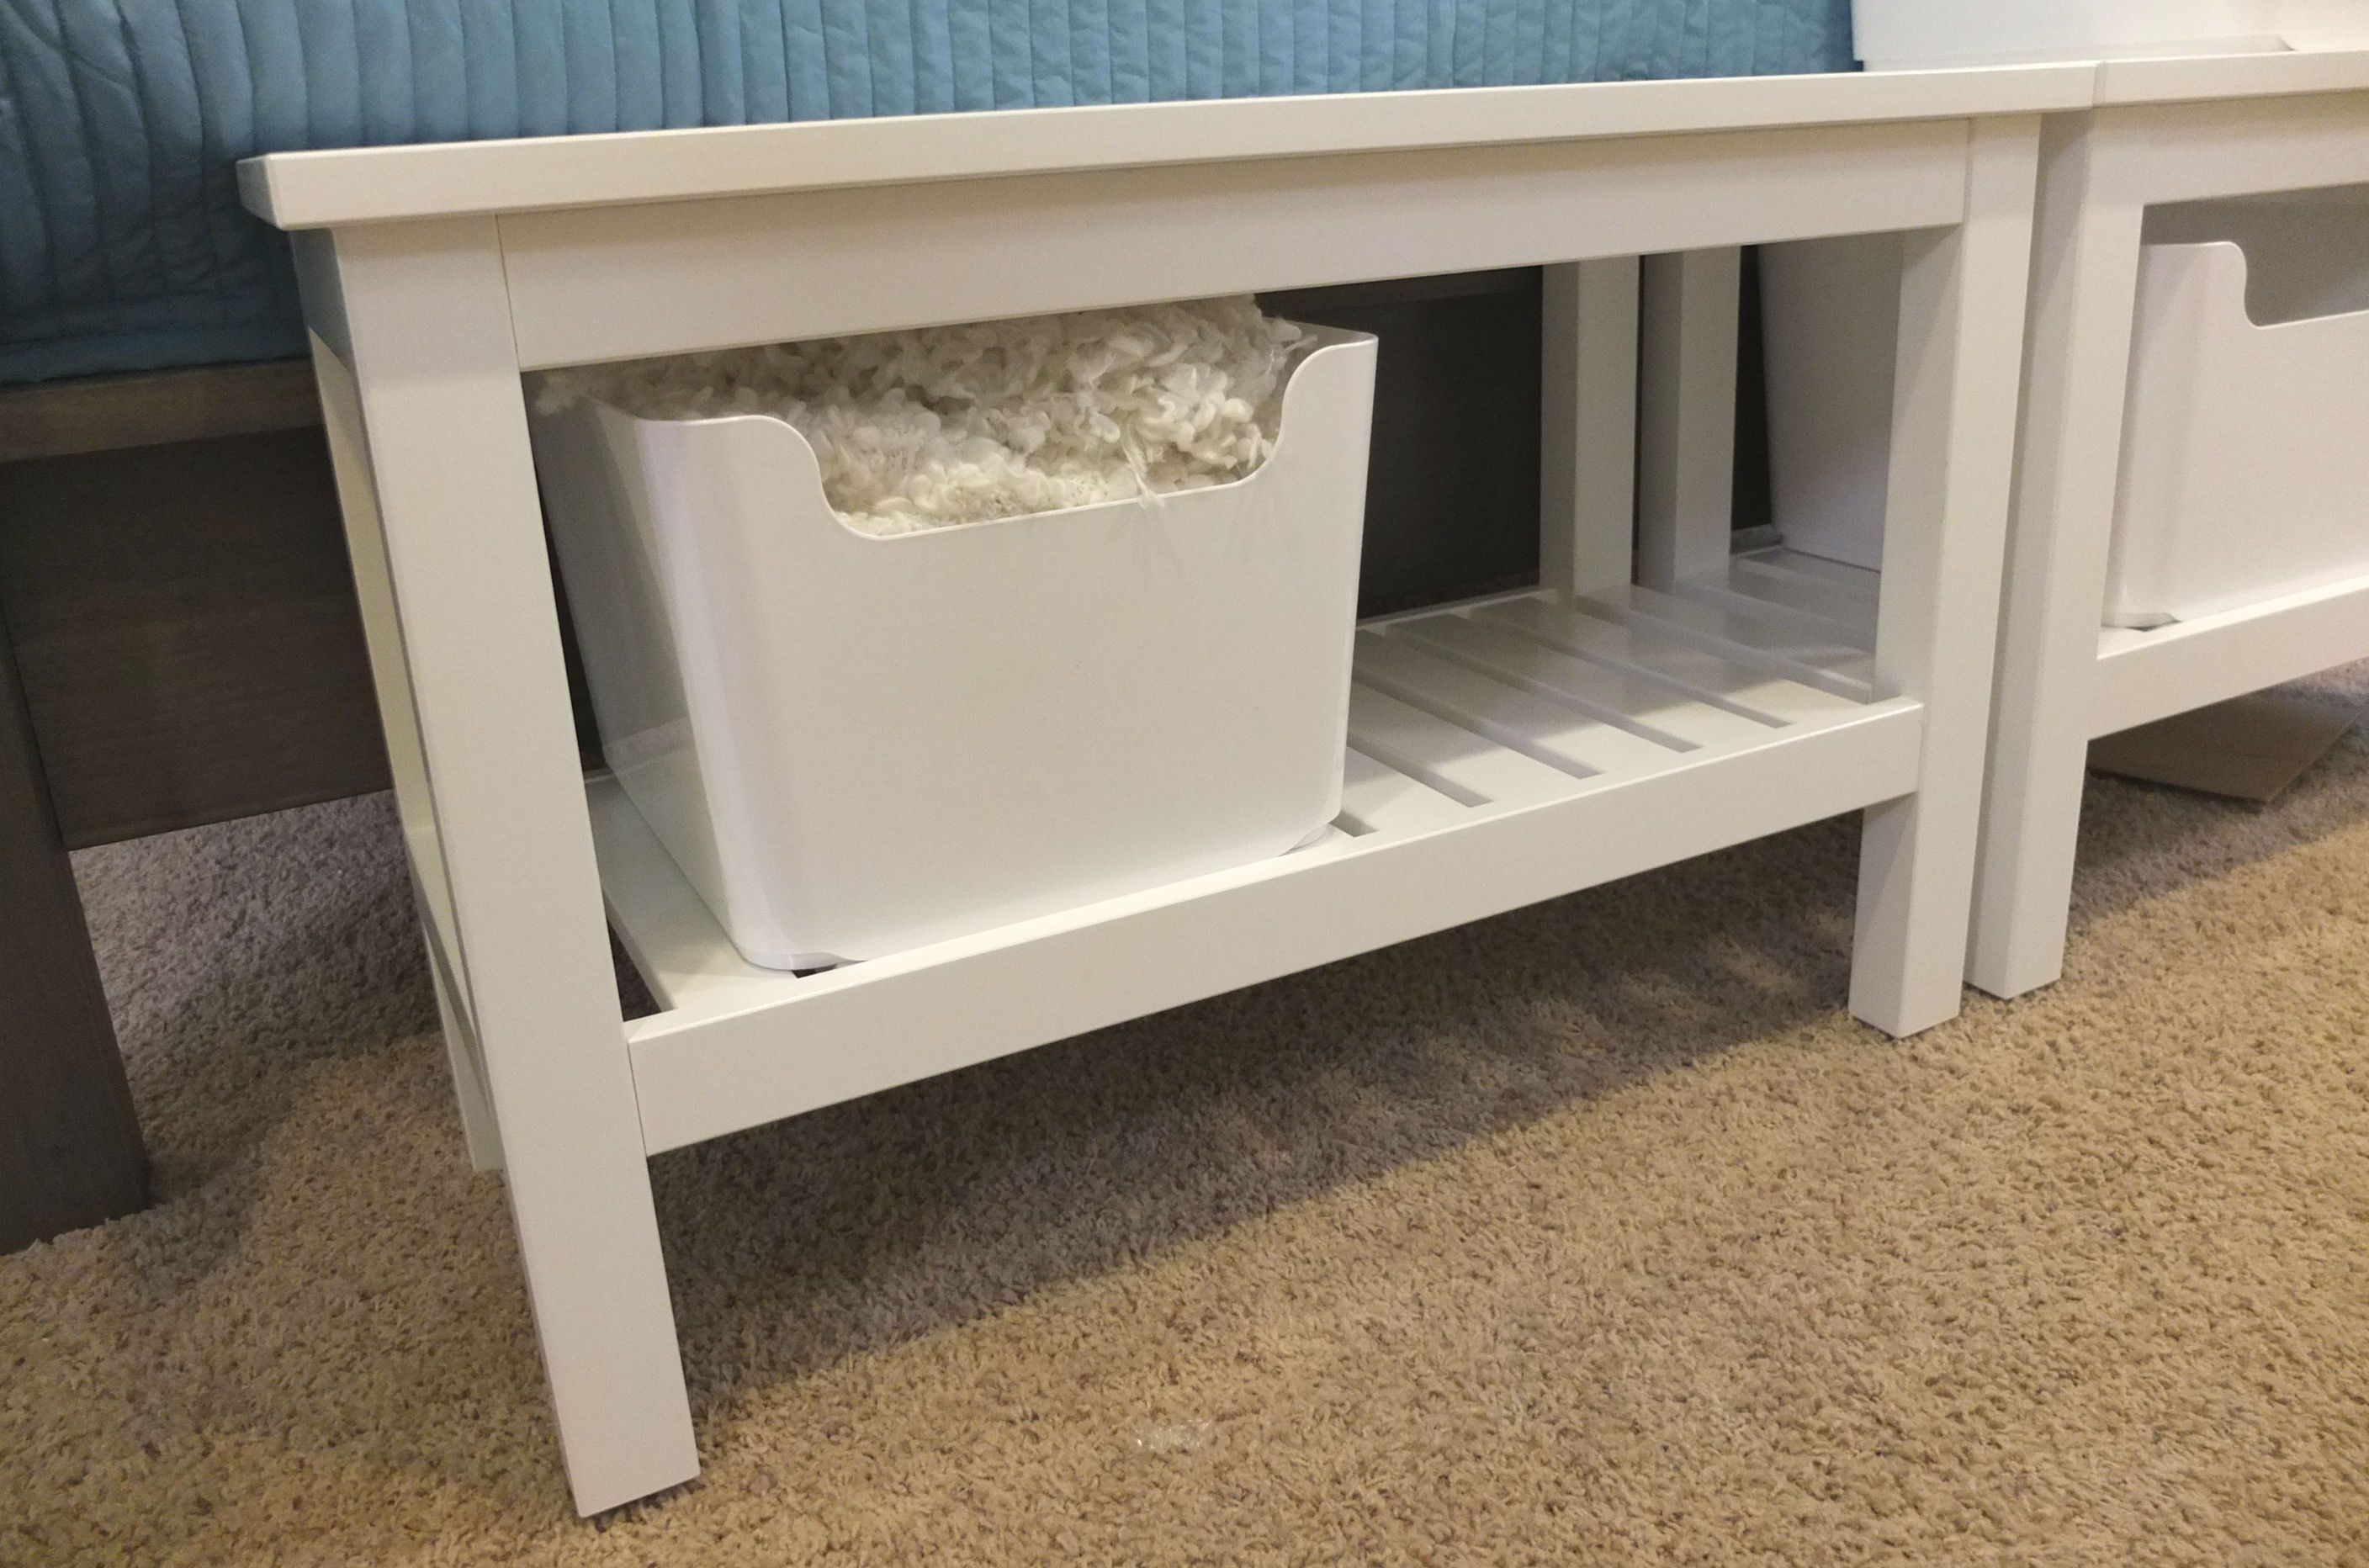 Best Hemnes Bench White 32 5 8 Ikea Home Tour Ikea Ikea 640 x 480